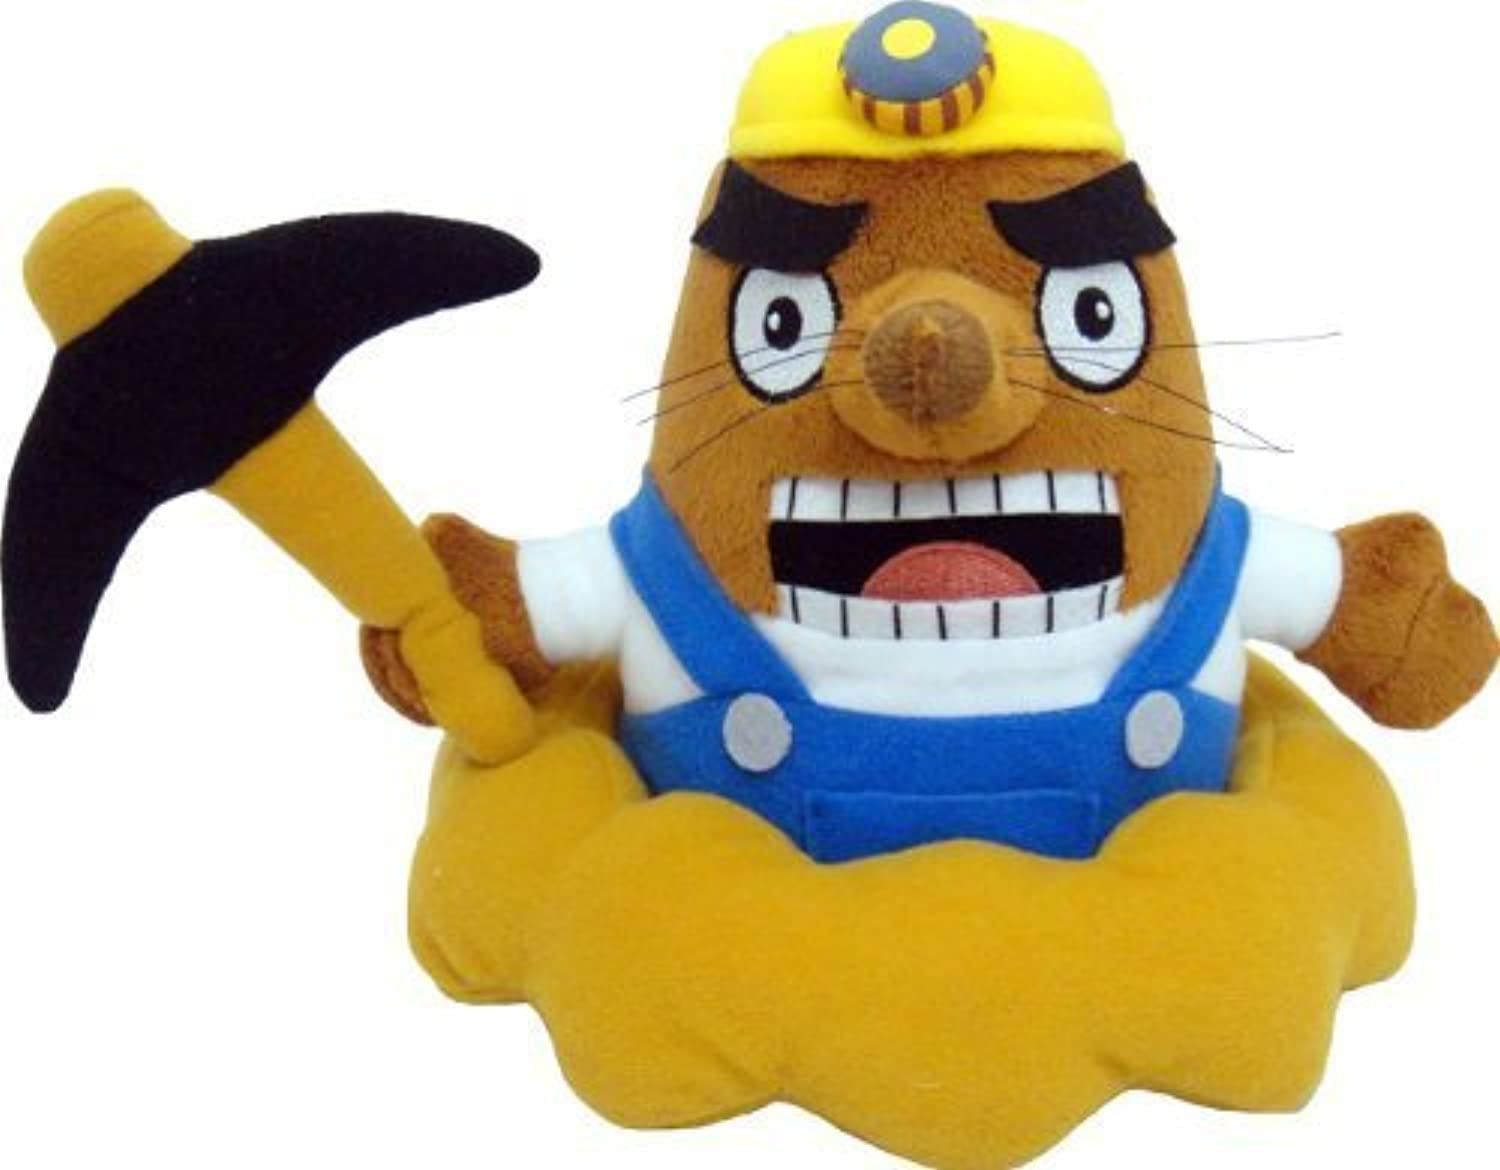 Sanei Animal Crossing New Leaf  Sonny Mr. Resetti 6.5  Plush by Sanei